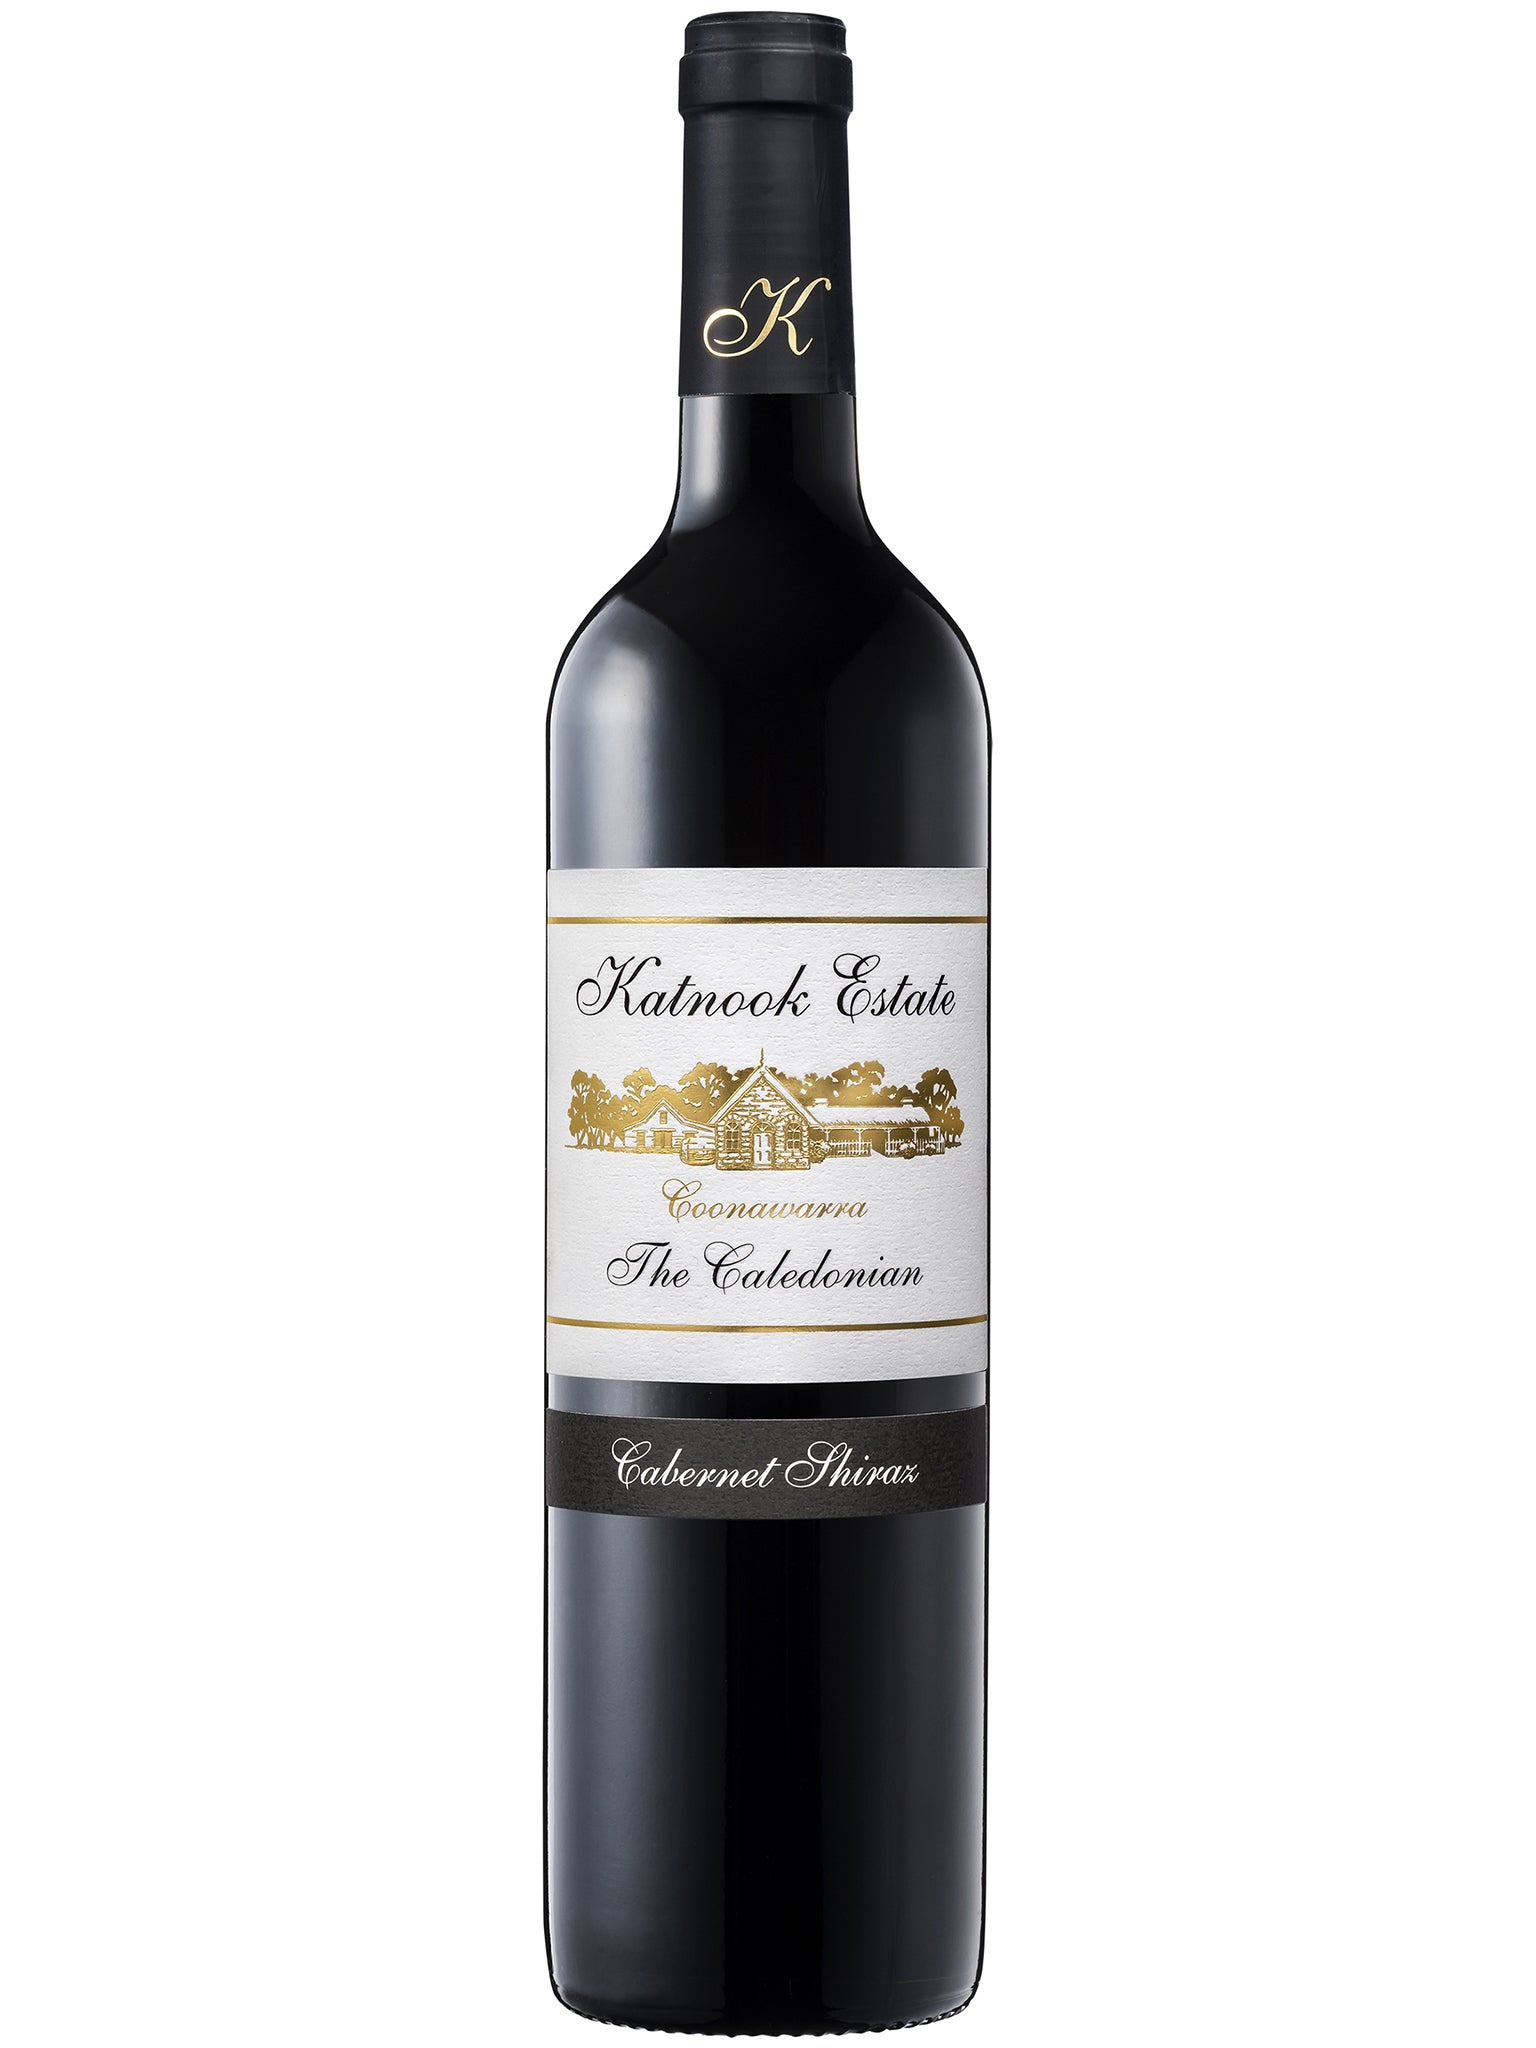 Katnook Estate Caledonian Cabernet Shiraz 6pk 2016